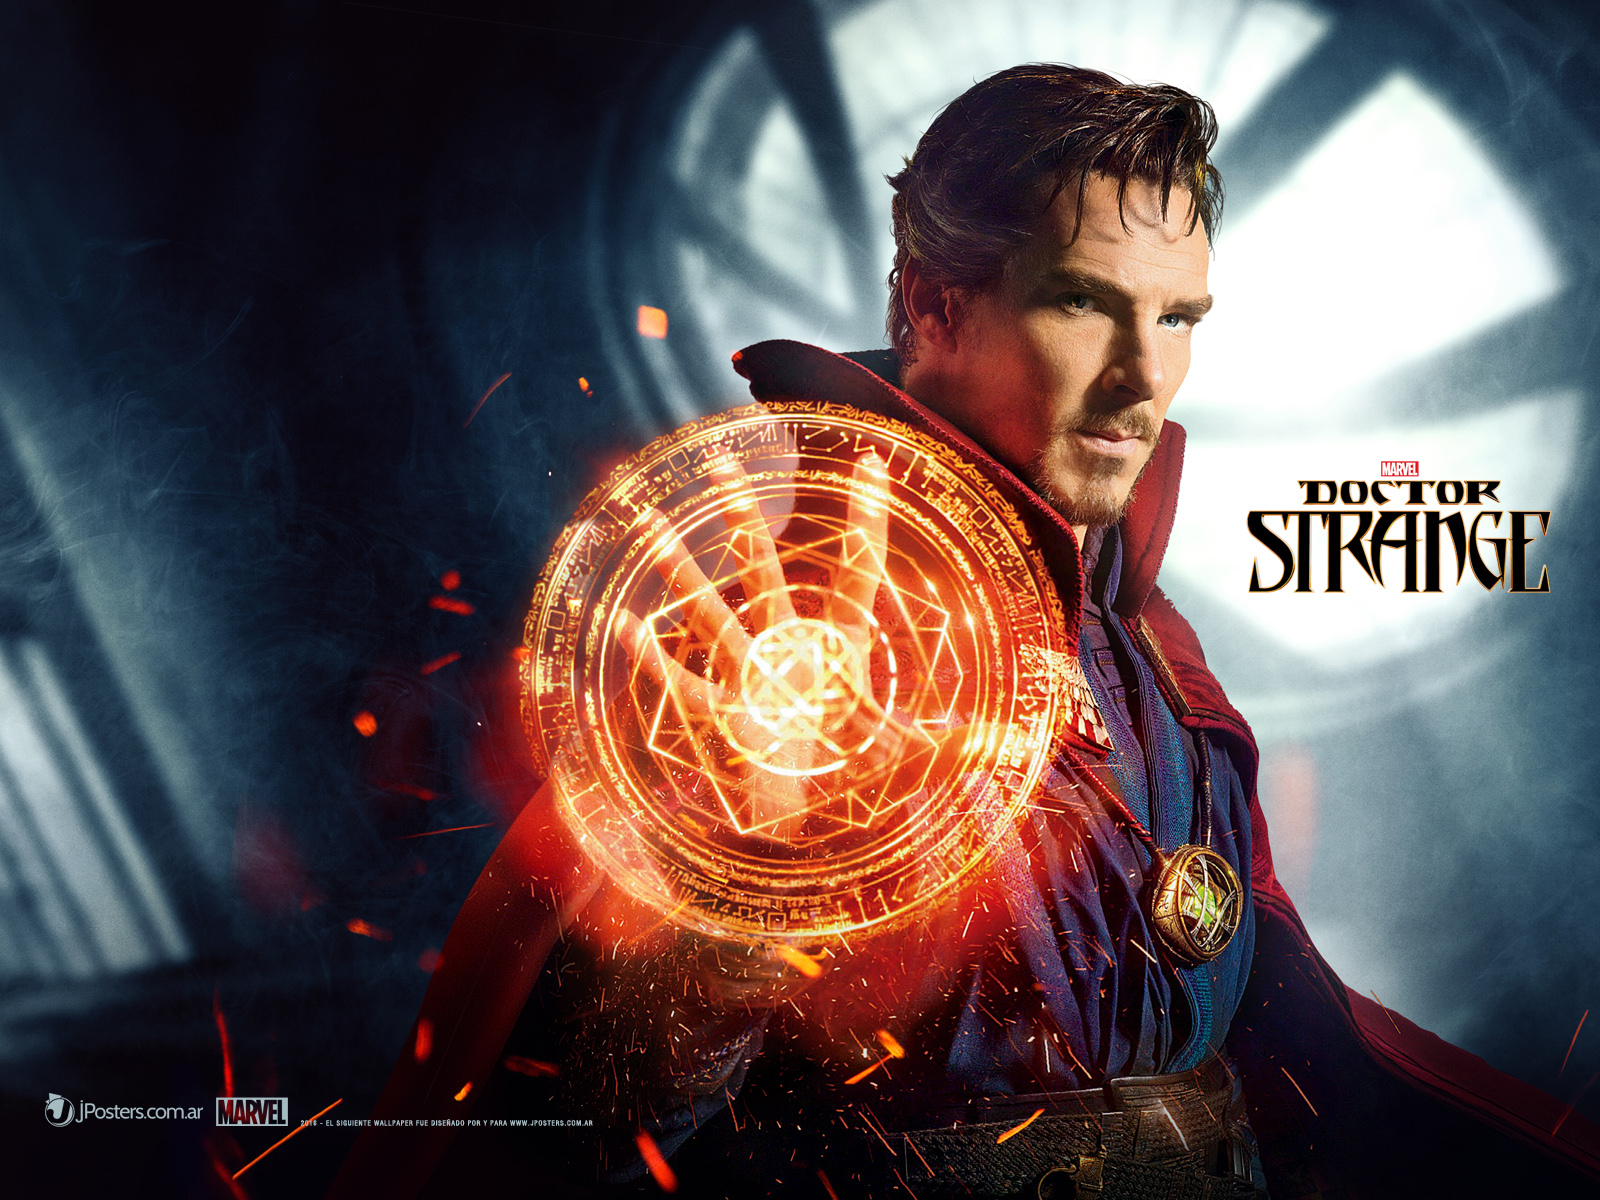 Wallpaper_Doctor_Strange_1600x1200_JPosters